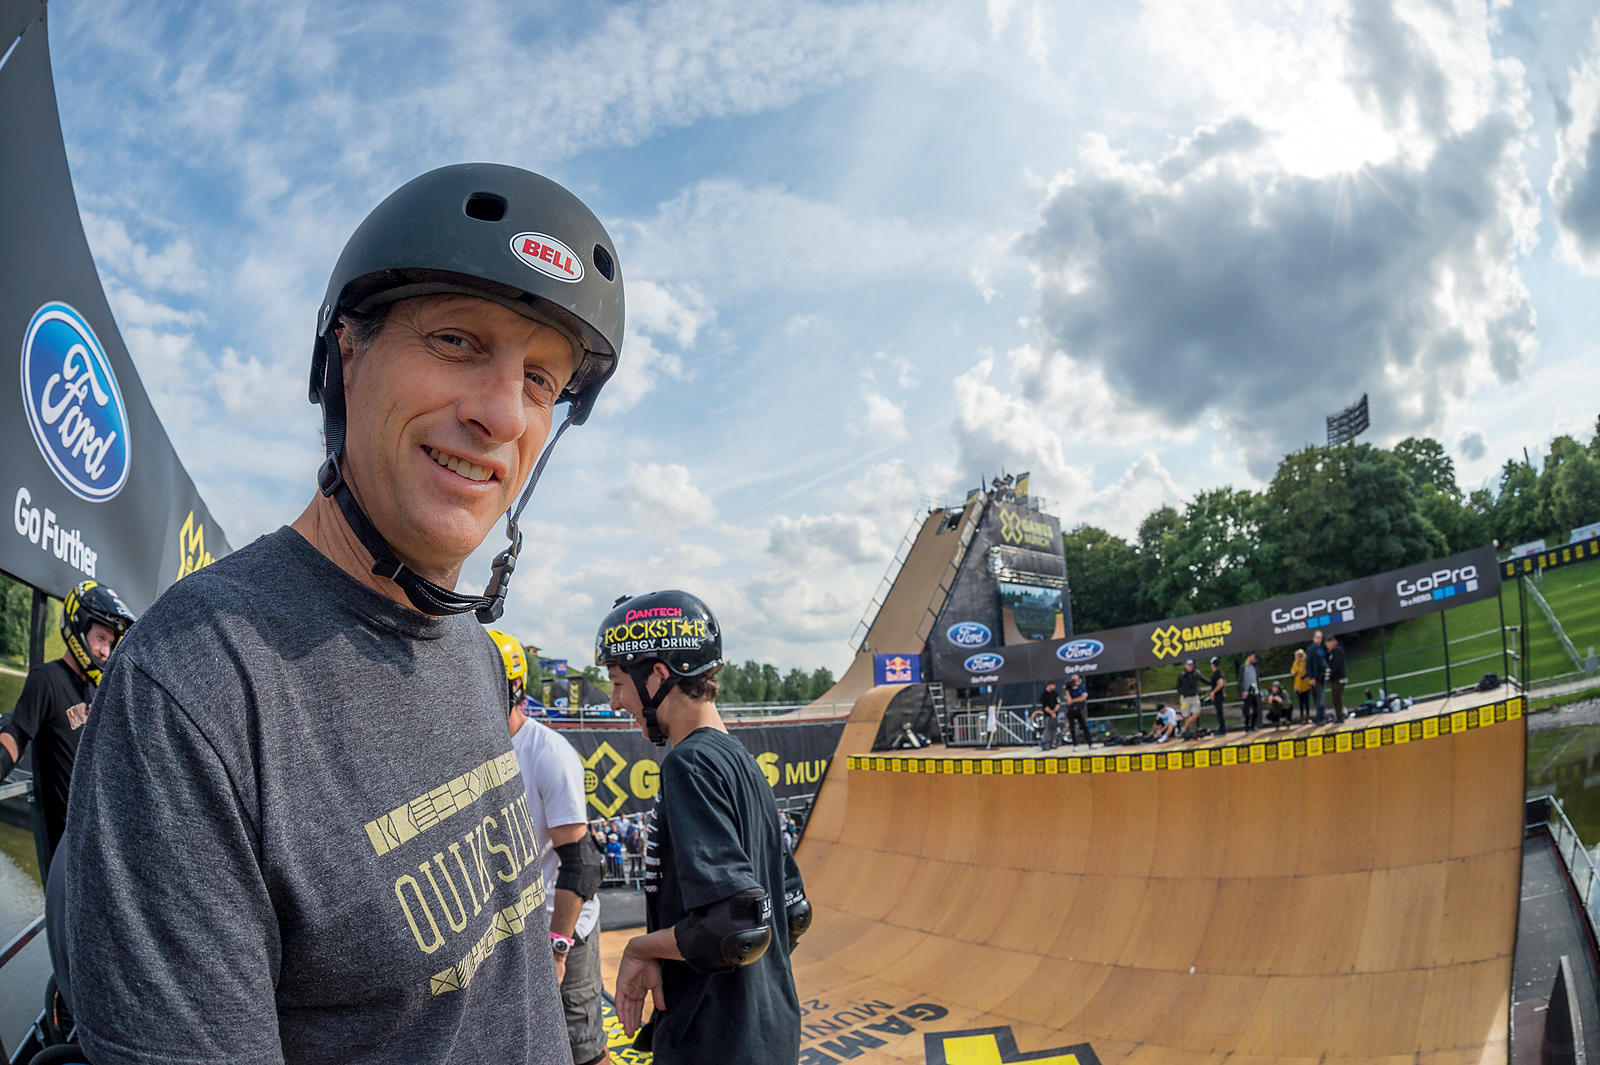 Munich, Germany - June 26, 2013 - Olympiapark: Tony Hawk during Tony Hawk and Friends Skateboard Vert demo during X Games Mun...